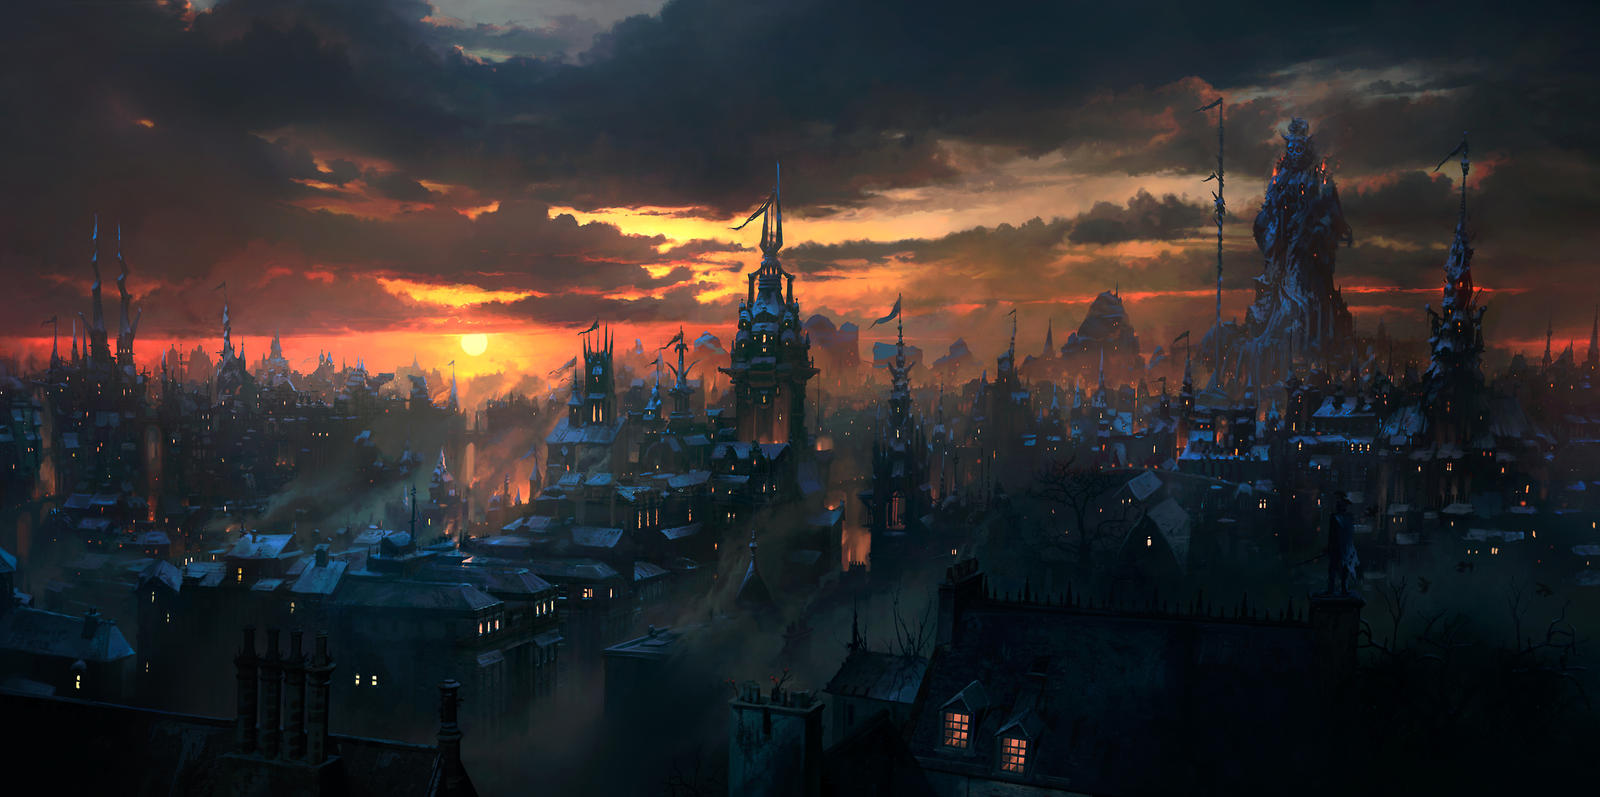 Volsinii City by JonasDeRo